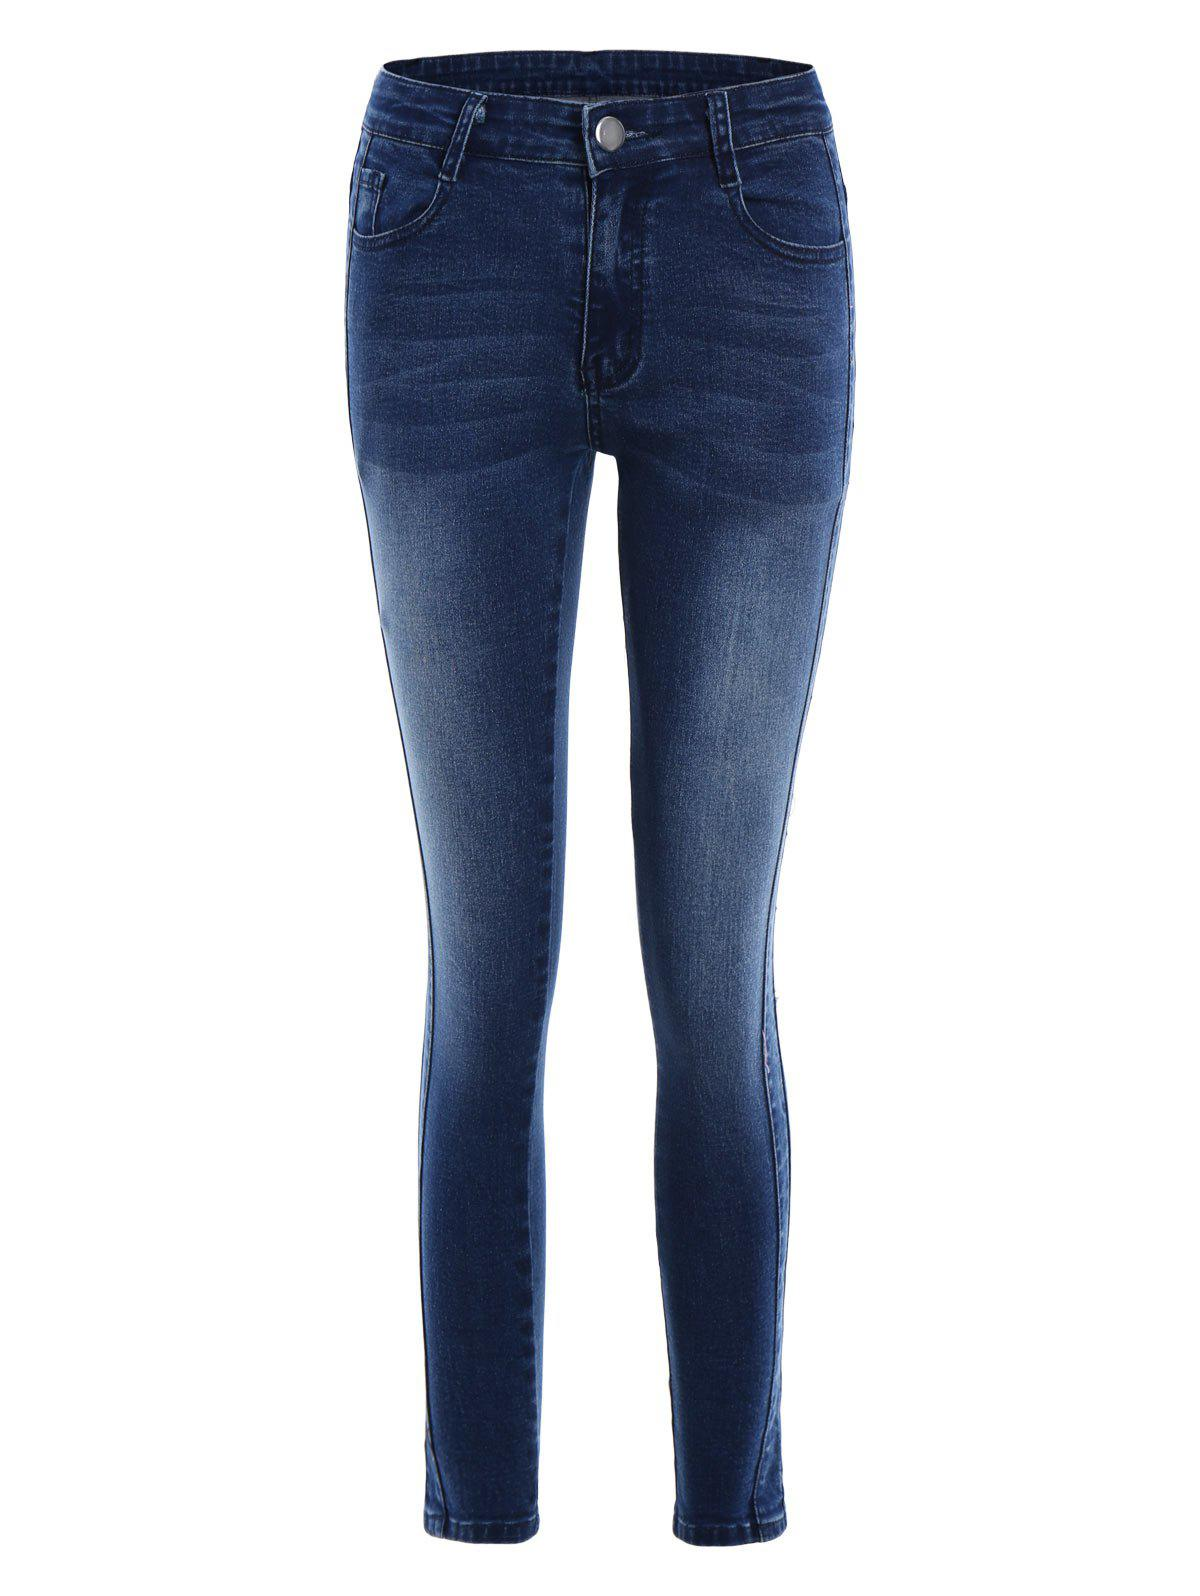 Pockets Fitted Pencil Jeans - DEEP BLUE M